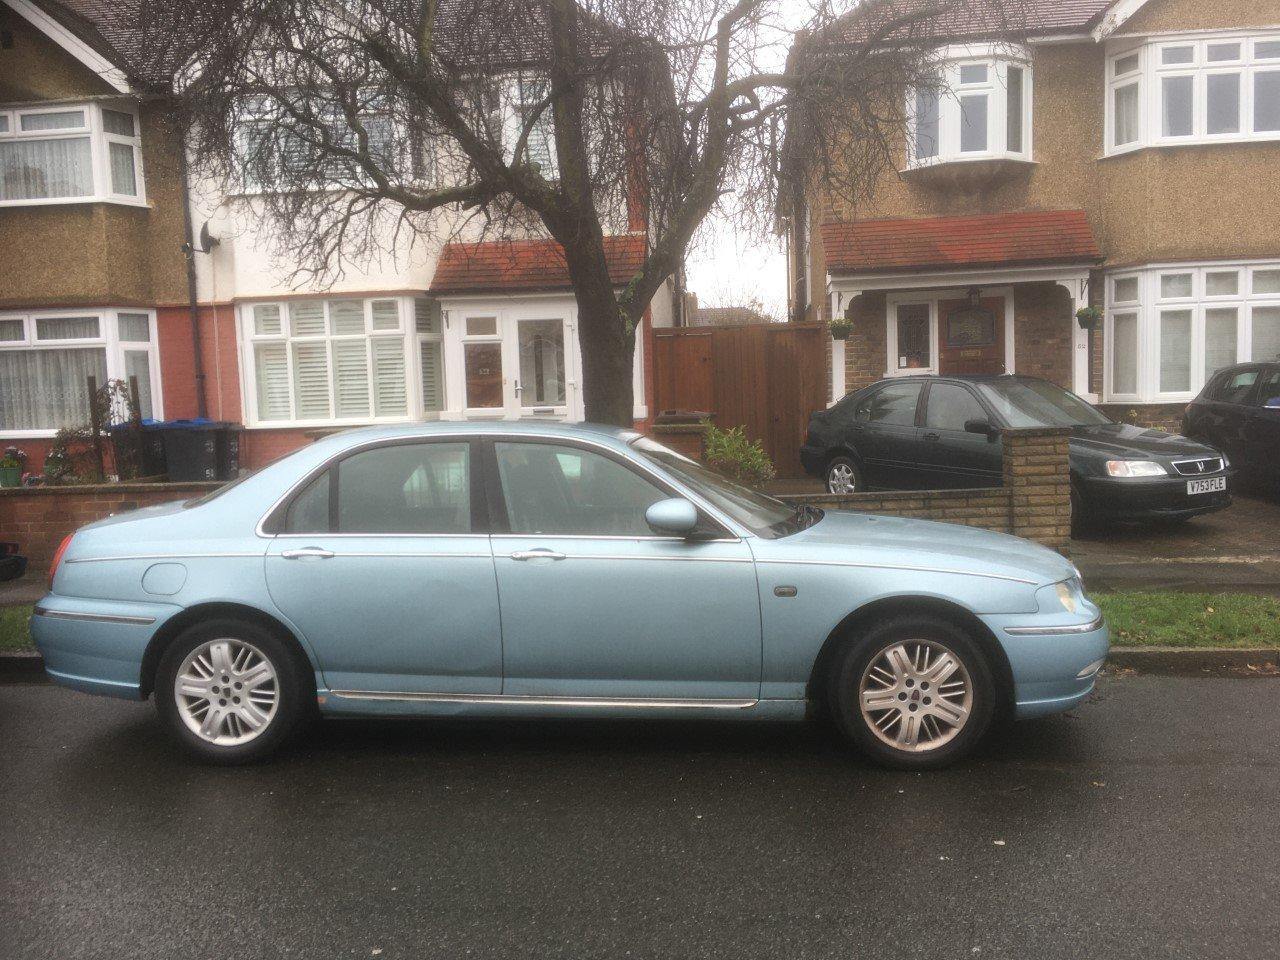 2003 ROVER 75 CLUB SE For Sale (picture 1 of 1)